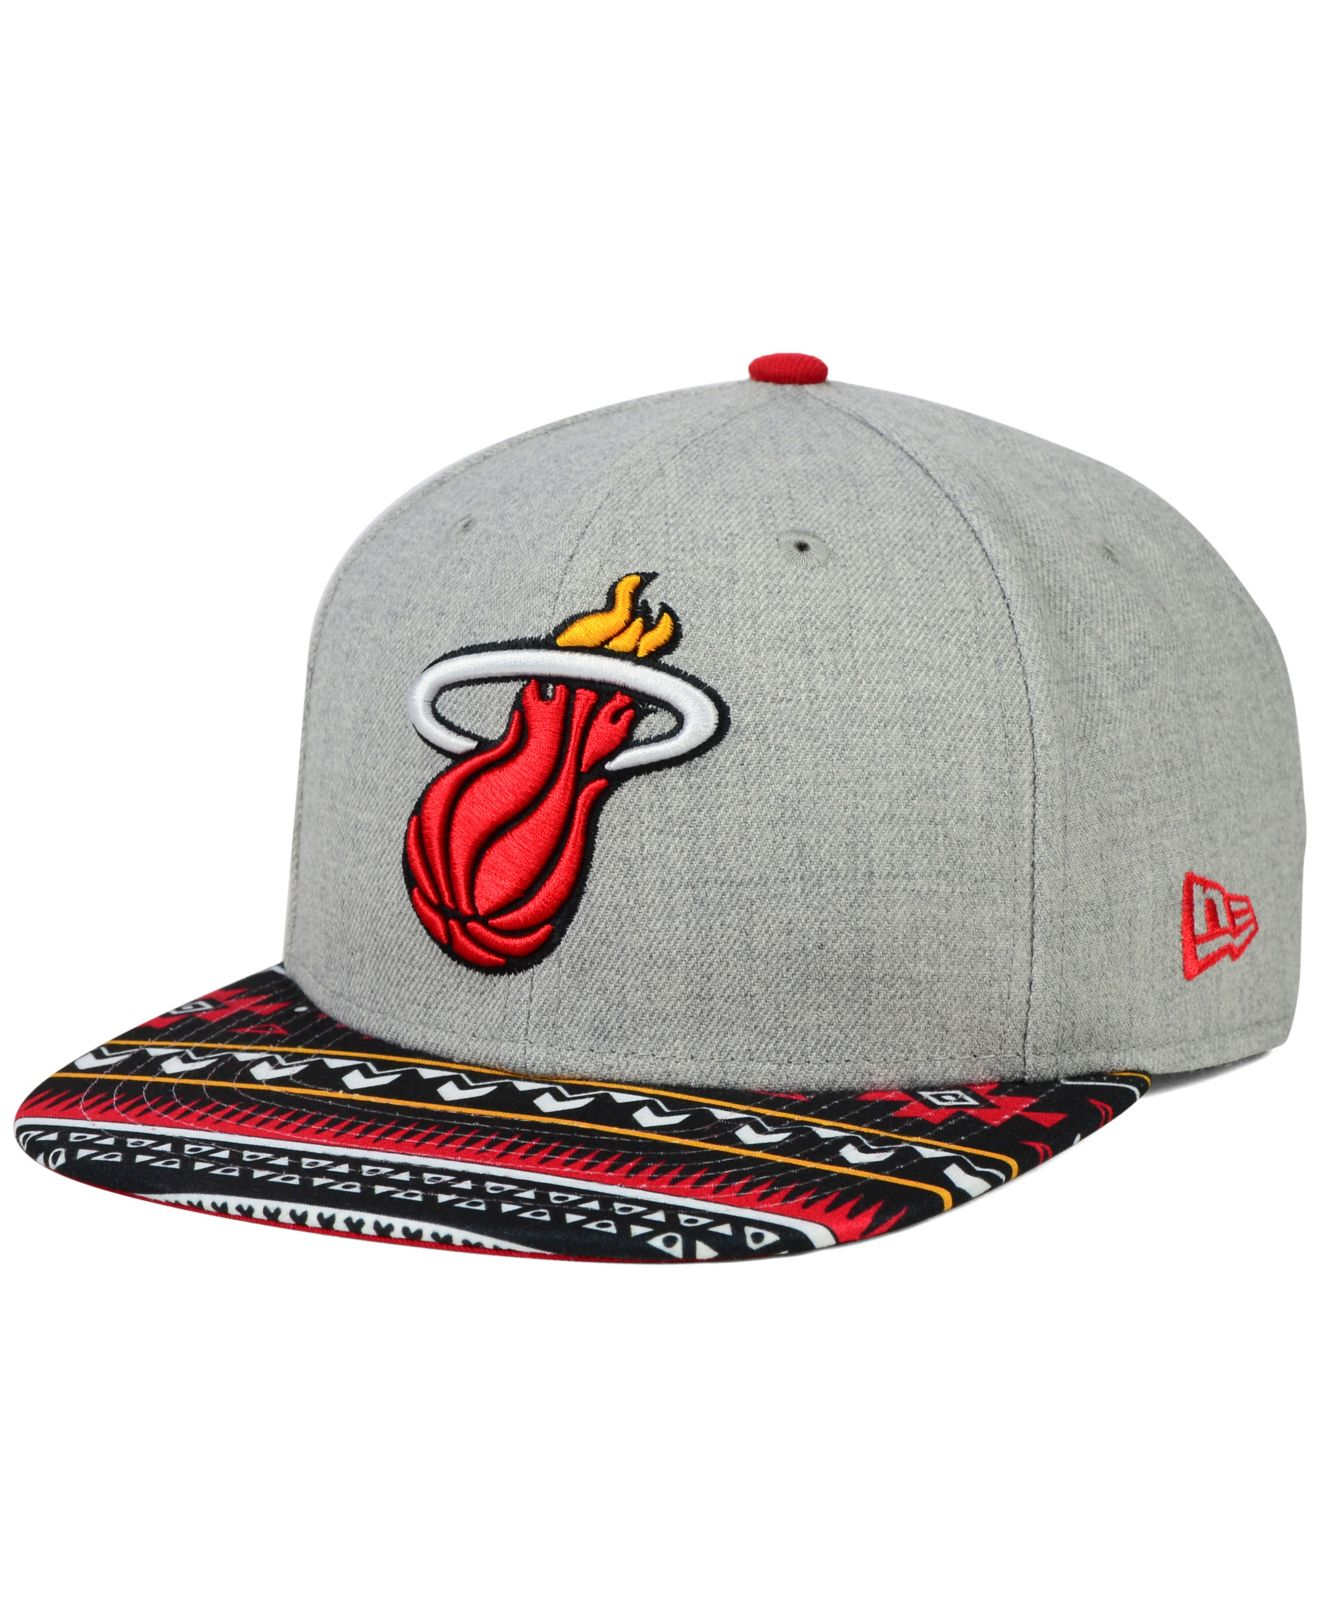 new product cc4e2 f8a7d ... clearance lyst ktz miami heat neon mashup 9fifty snapback cap in gray  for men 80121 9e261